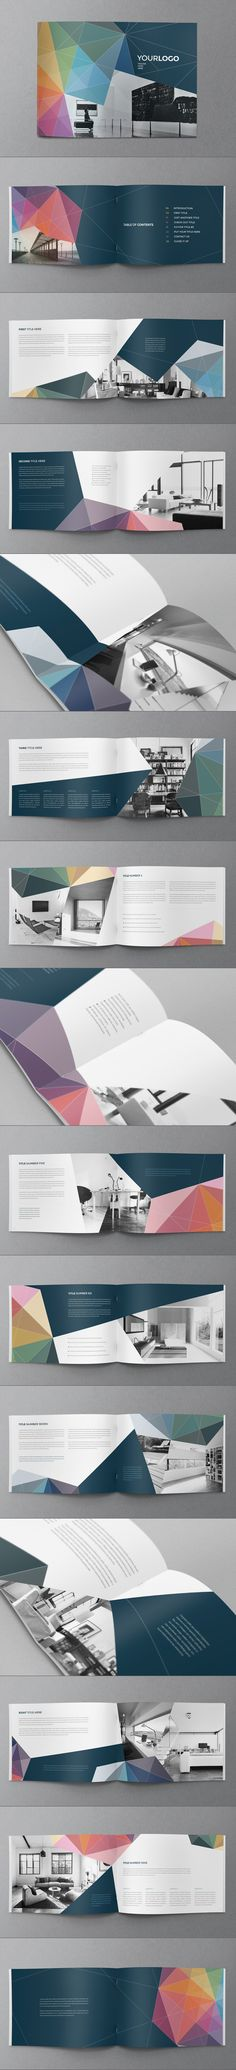 Buy Multicolor Modern Brochure by AbraDesign on GraphicRiver. MULTICOLOR MODERN BROCHURE This brochure is an ideal way to showcase your properties. It is a horizontal design, avai. Brochure Indesign, Design Brochure, Booklet Design, Brochure Layout, Brochure Template, Web Design, Layout Design, Creative Design, Graphic Design